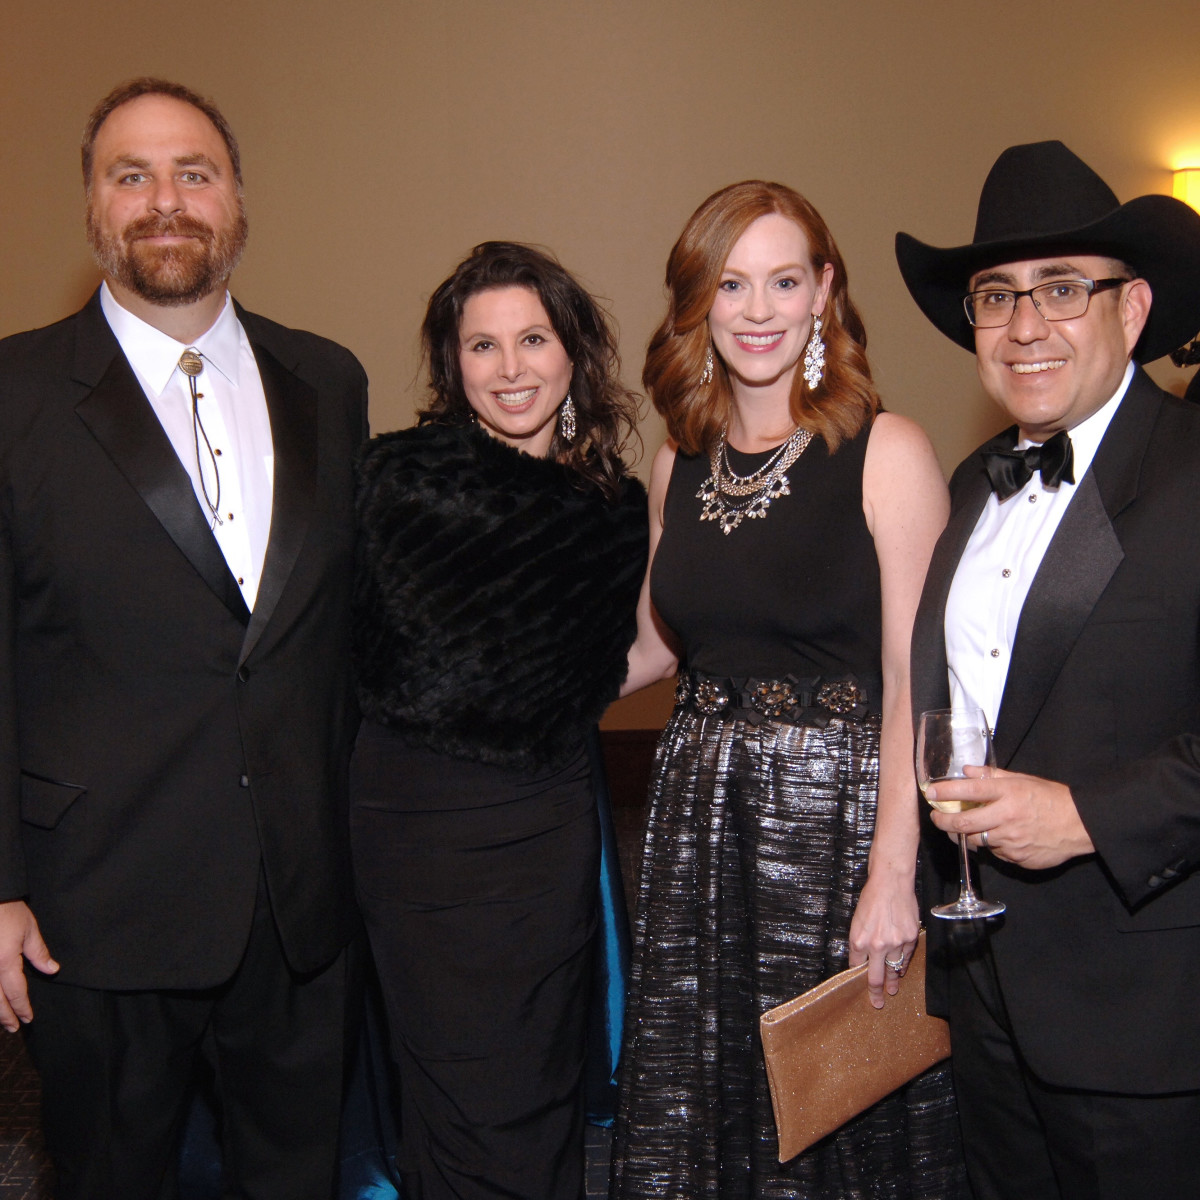 UH Law gala, April 2016, Judge Mike Engelhart, Eva Engelhart, Andria Rondon, Judge Reece Rondon